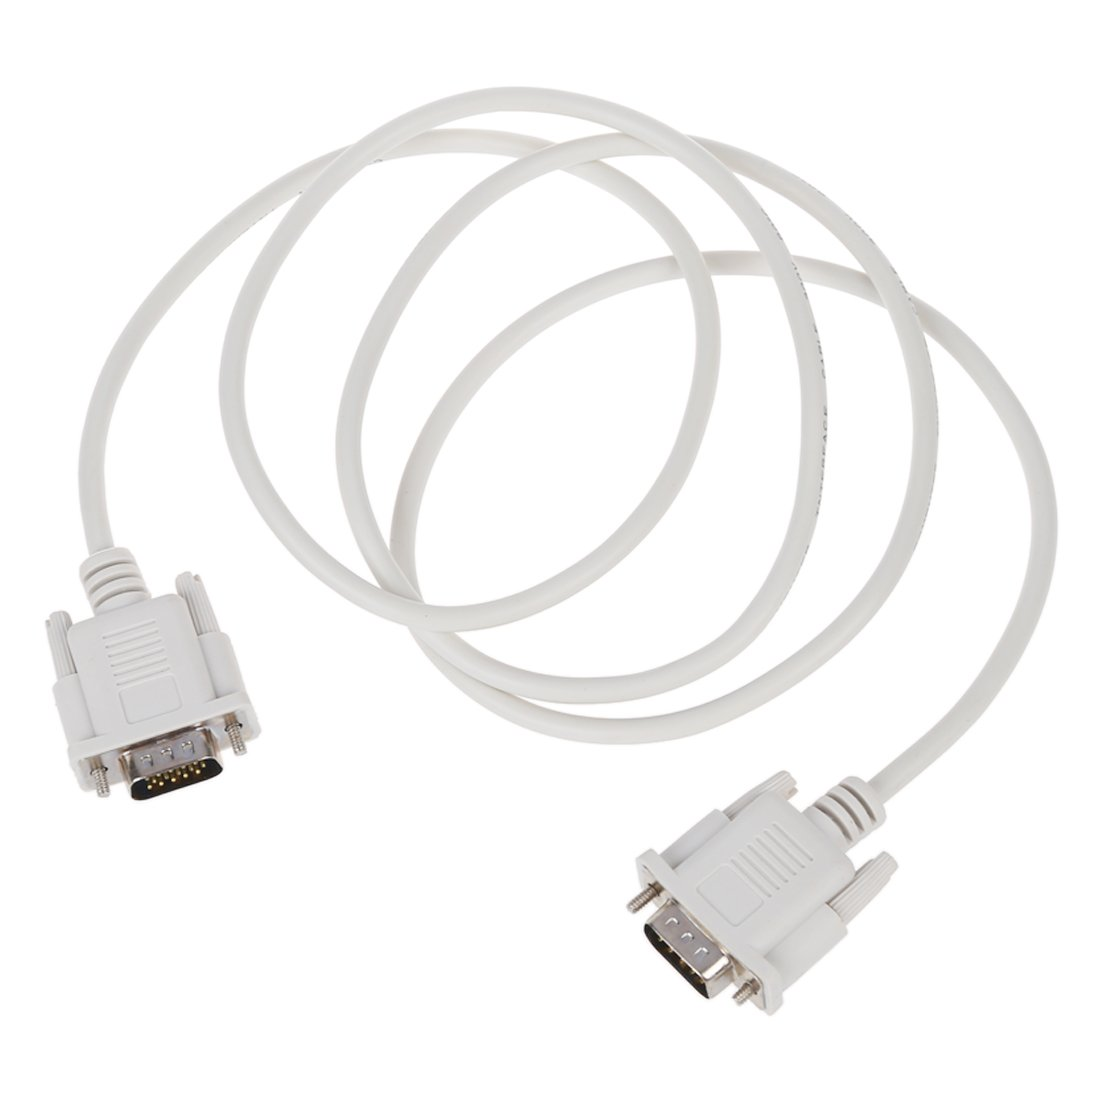 1.3m VGA Hd15 Male to Db9 Pin Male Adapter Cable White R SODIAL